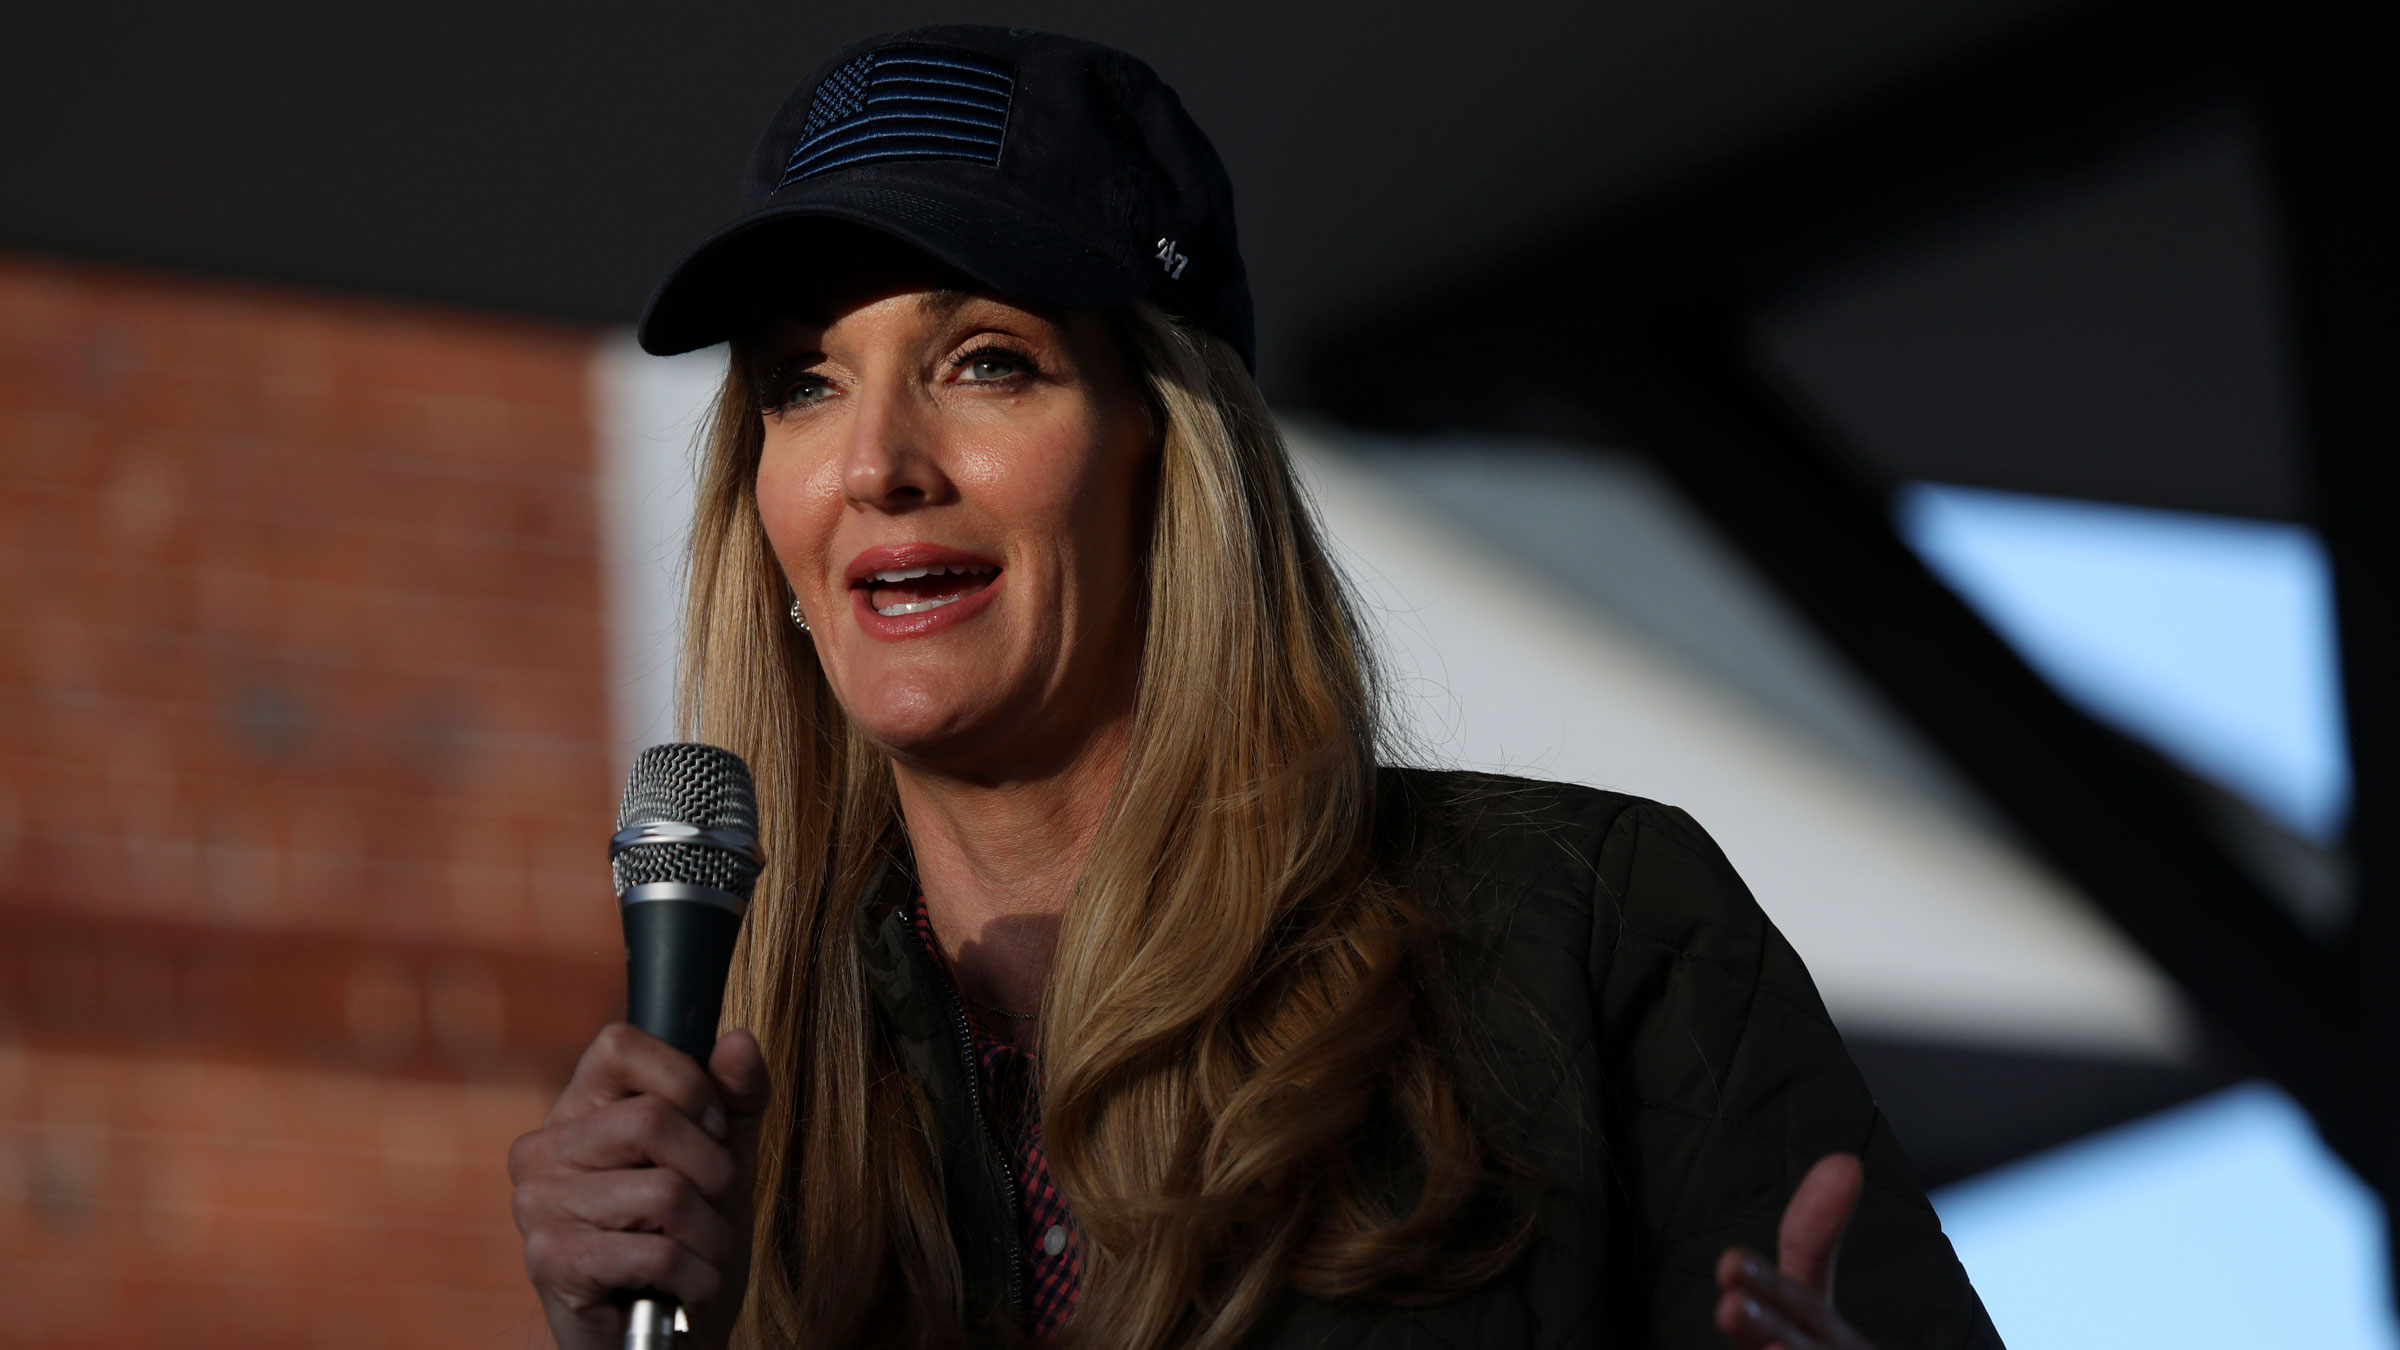 US Sen. Kelly Loeffler speaks to supporters during a rally in Cartersville, Georgia, on Sunday.